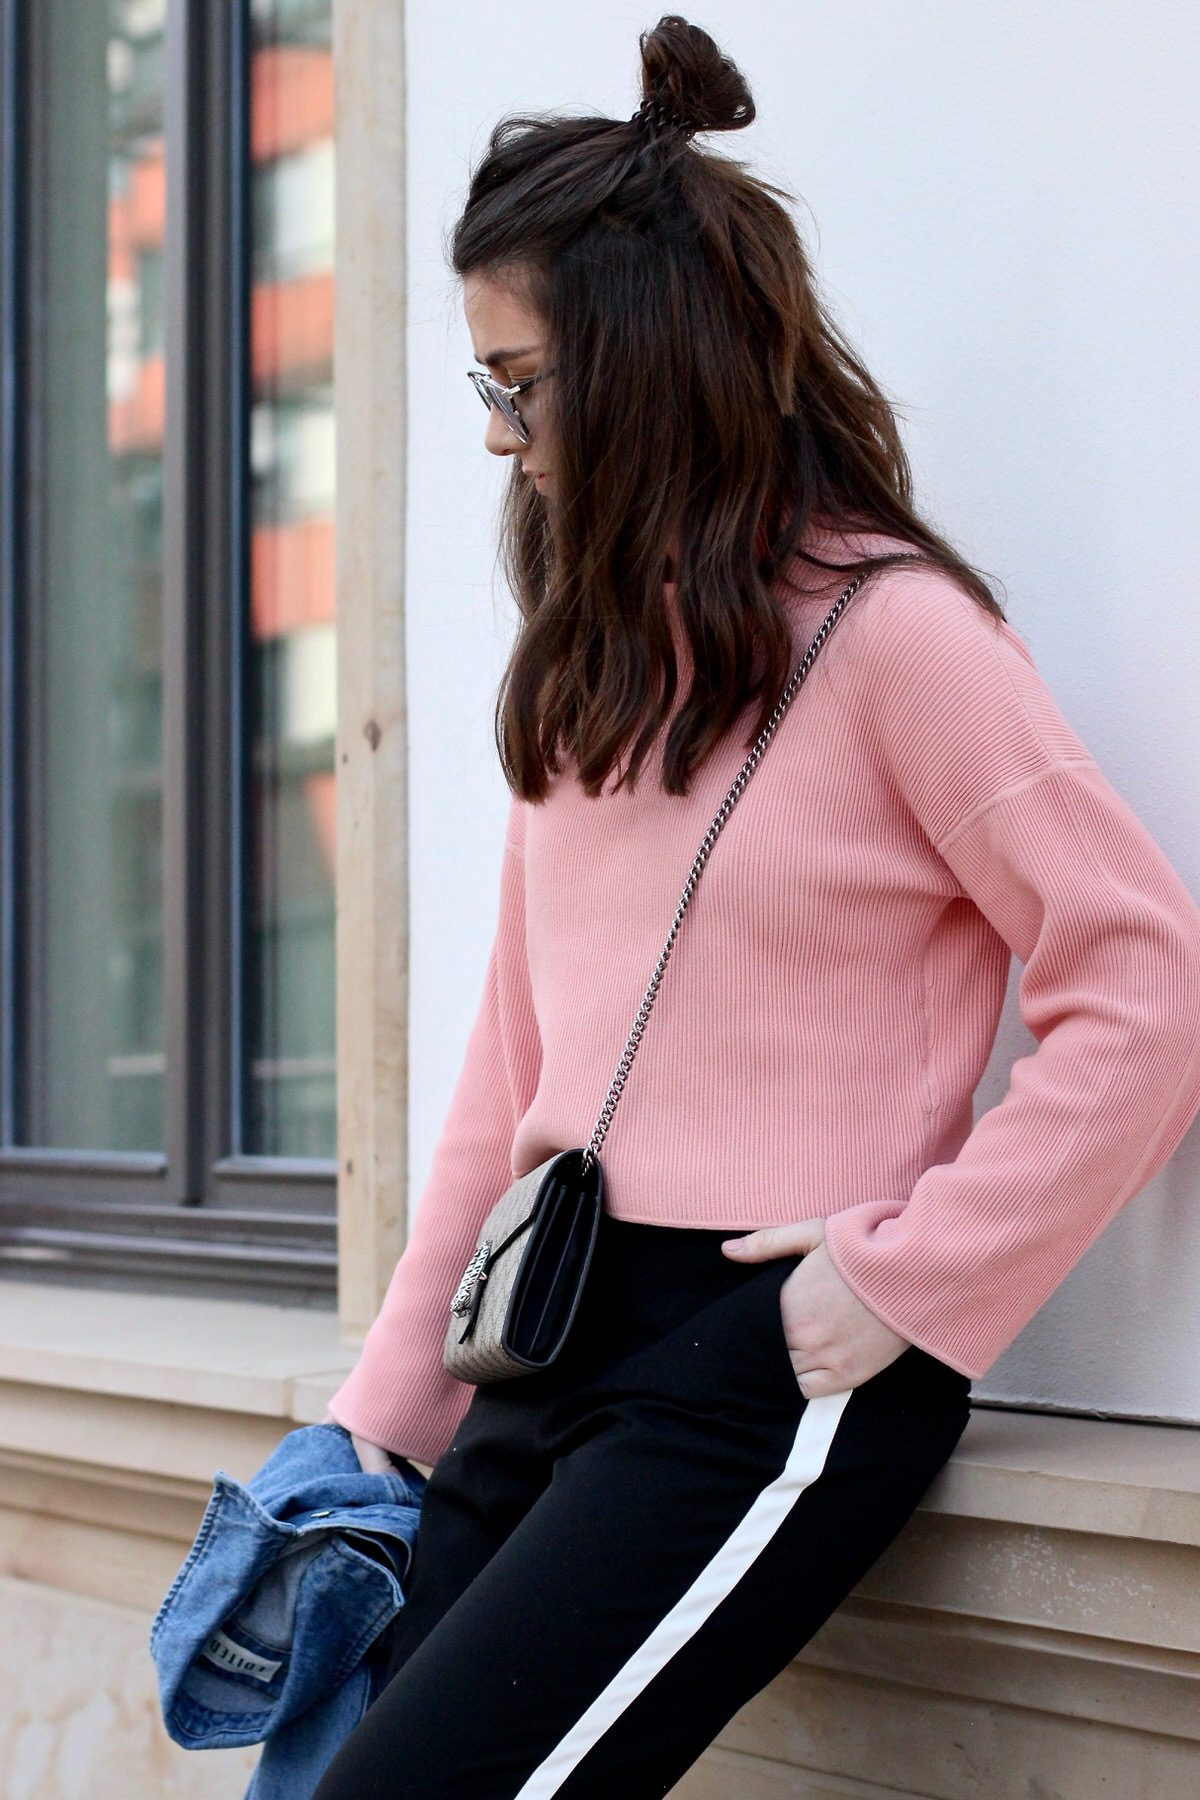 Gucci Princetown Slipper, Gucci Dionysus Mini, Dior Sonnenbrille, Zara Chinohose, Edited Jeansjacke & Pullover, pink, Streetstyle, Sommer